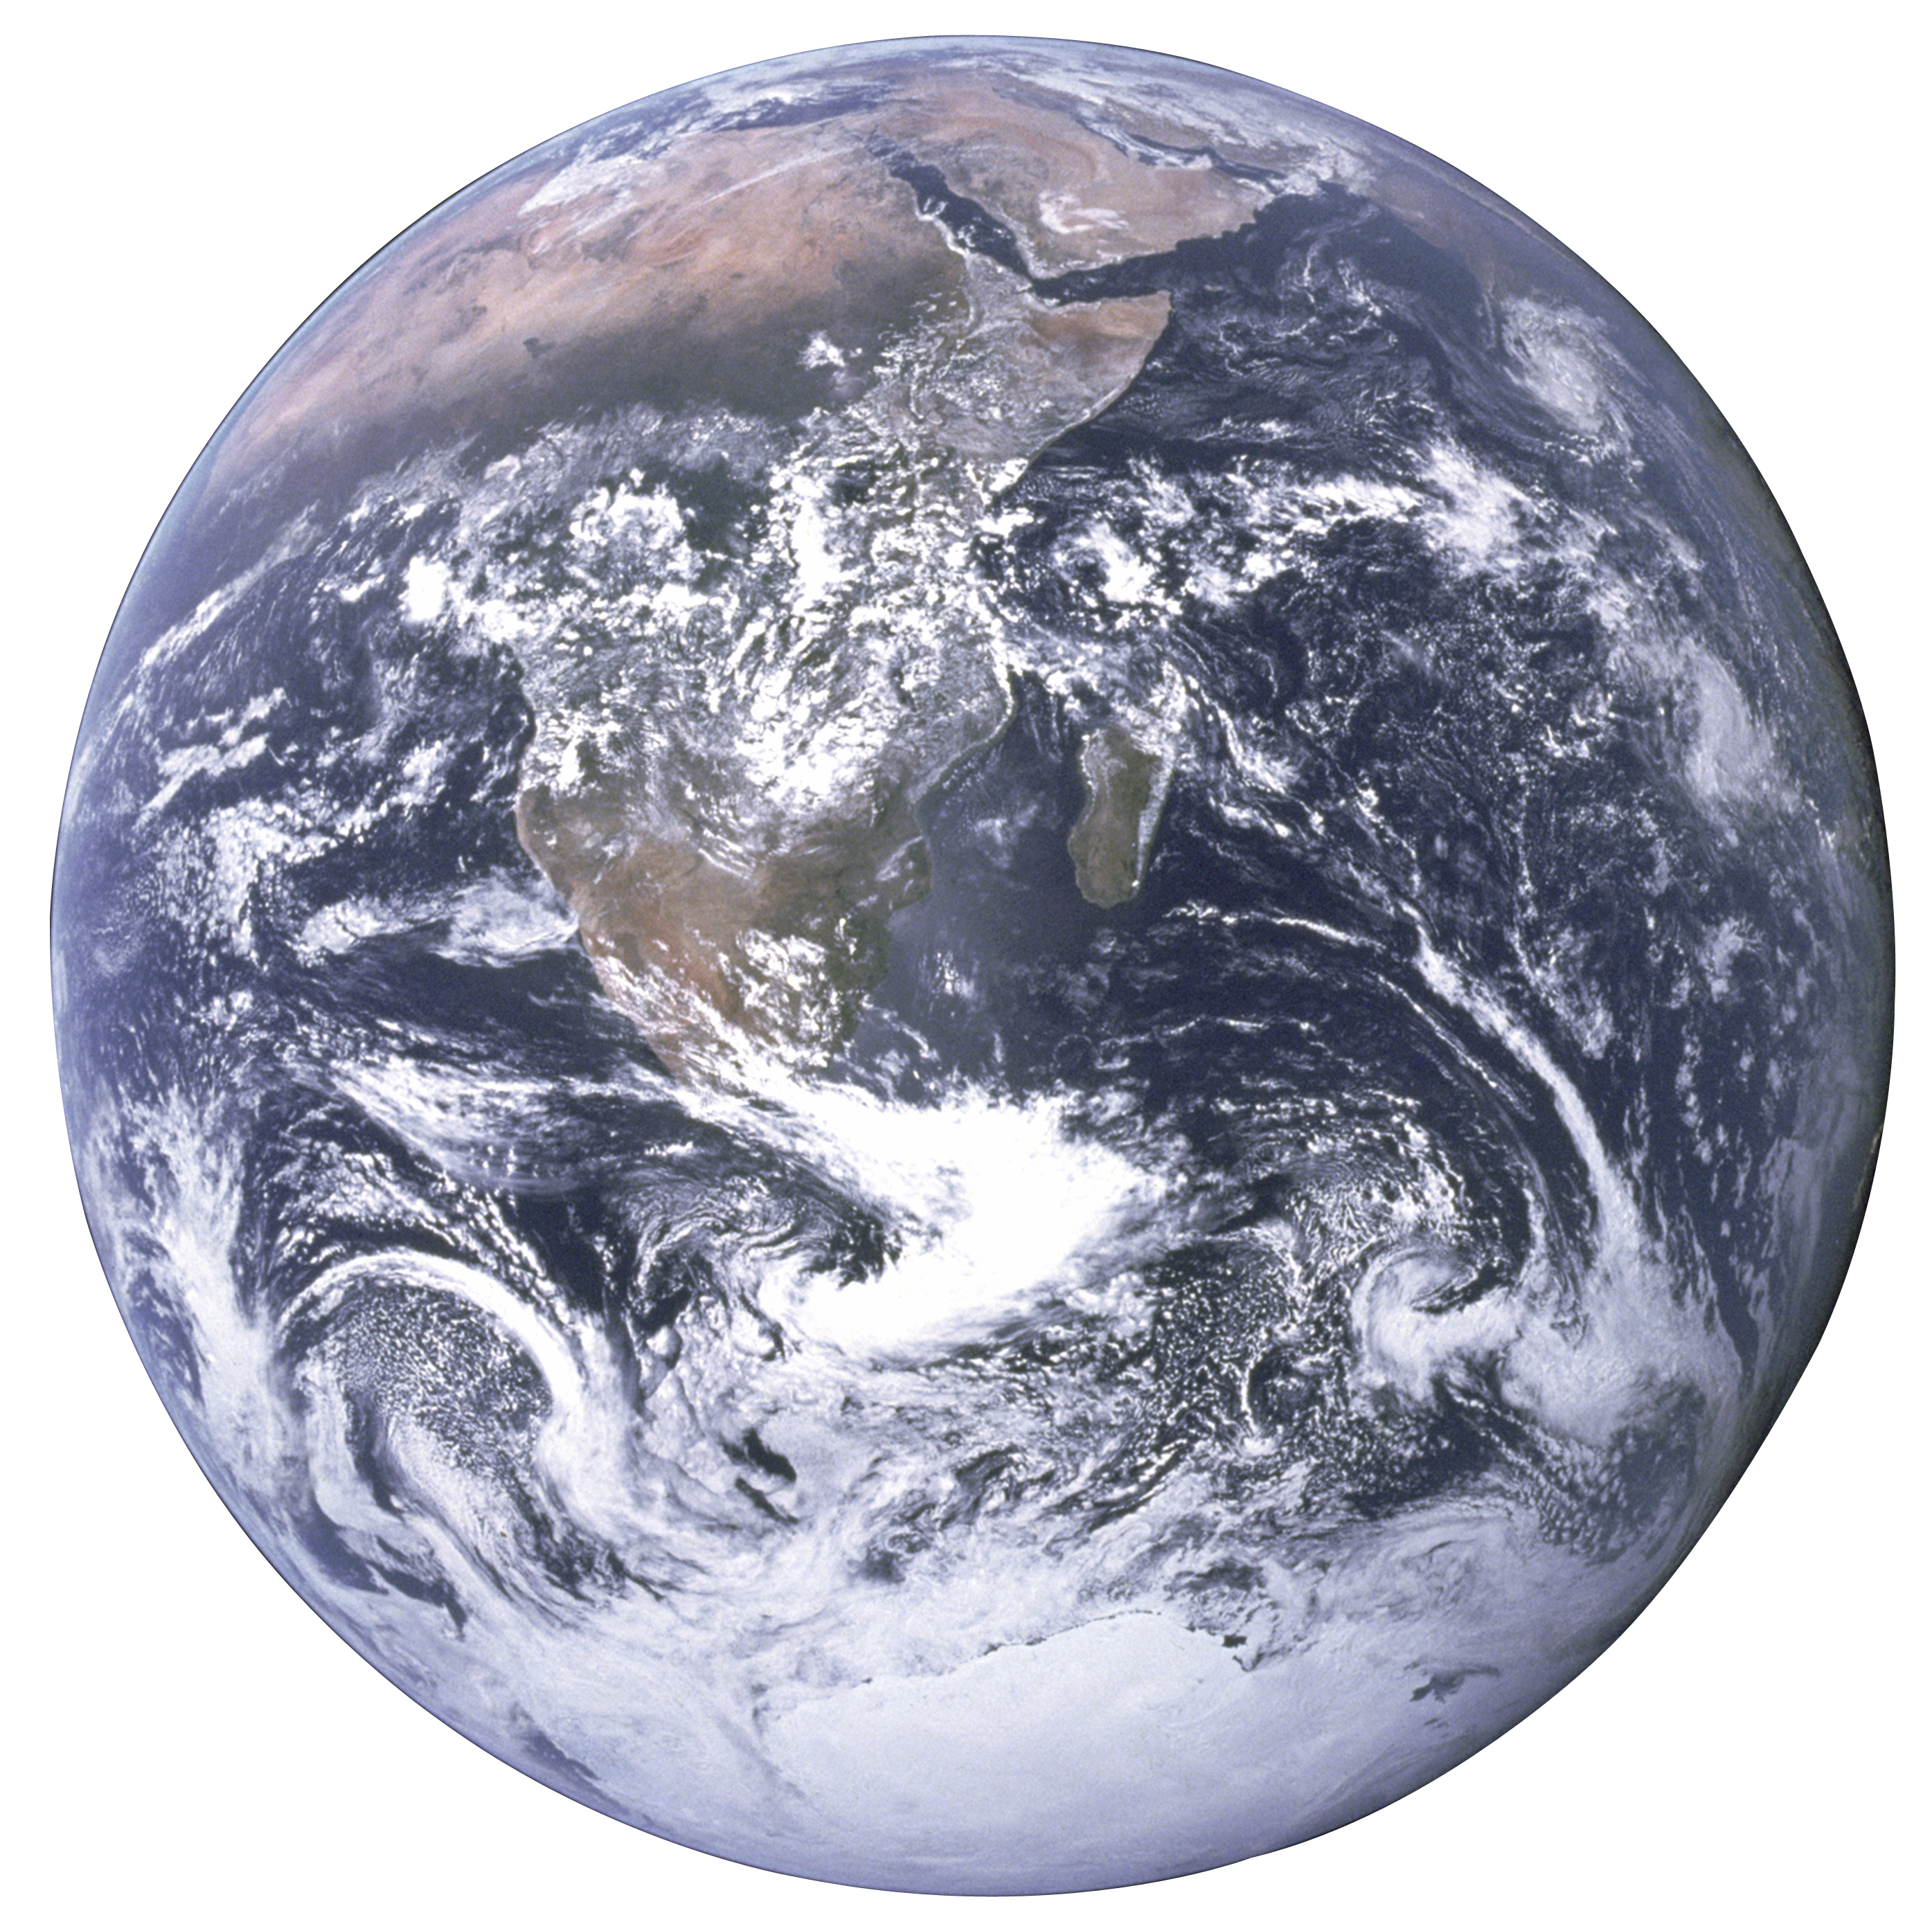 File:The Earth seen from Apollo 17 with transparent background.png.